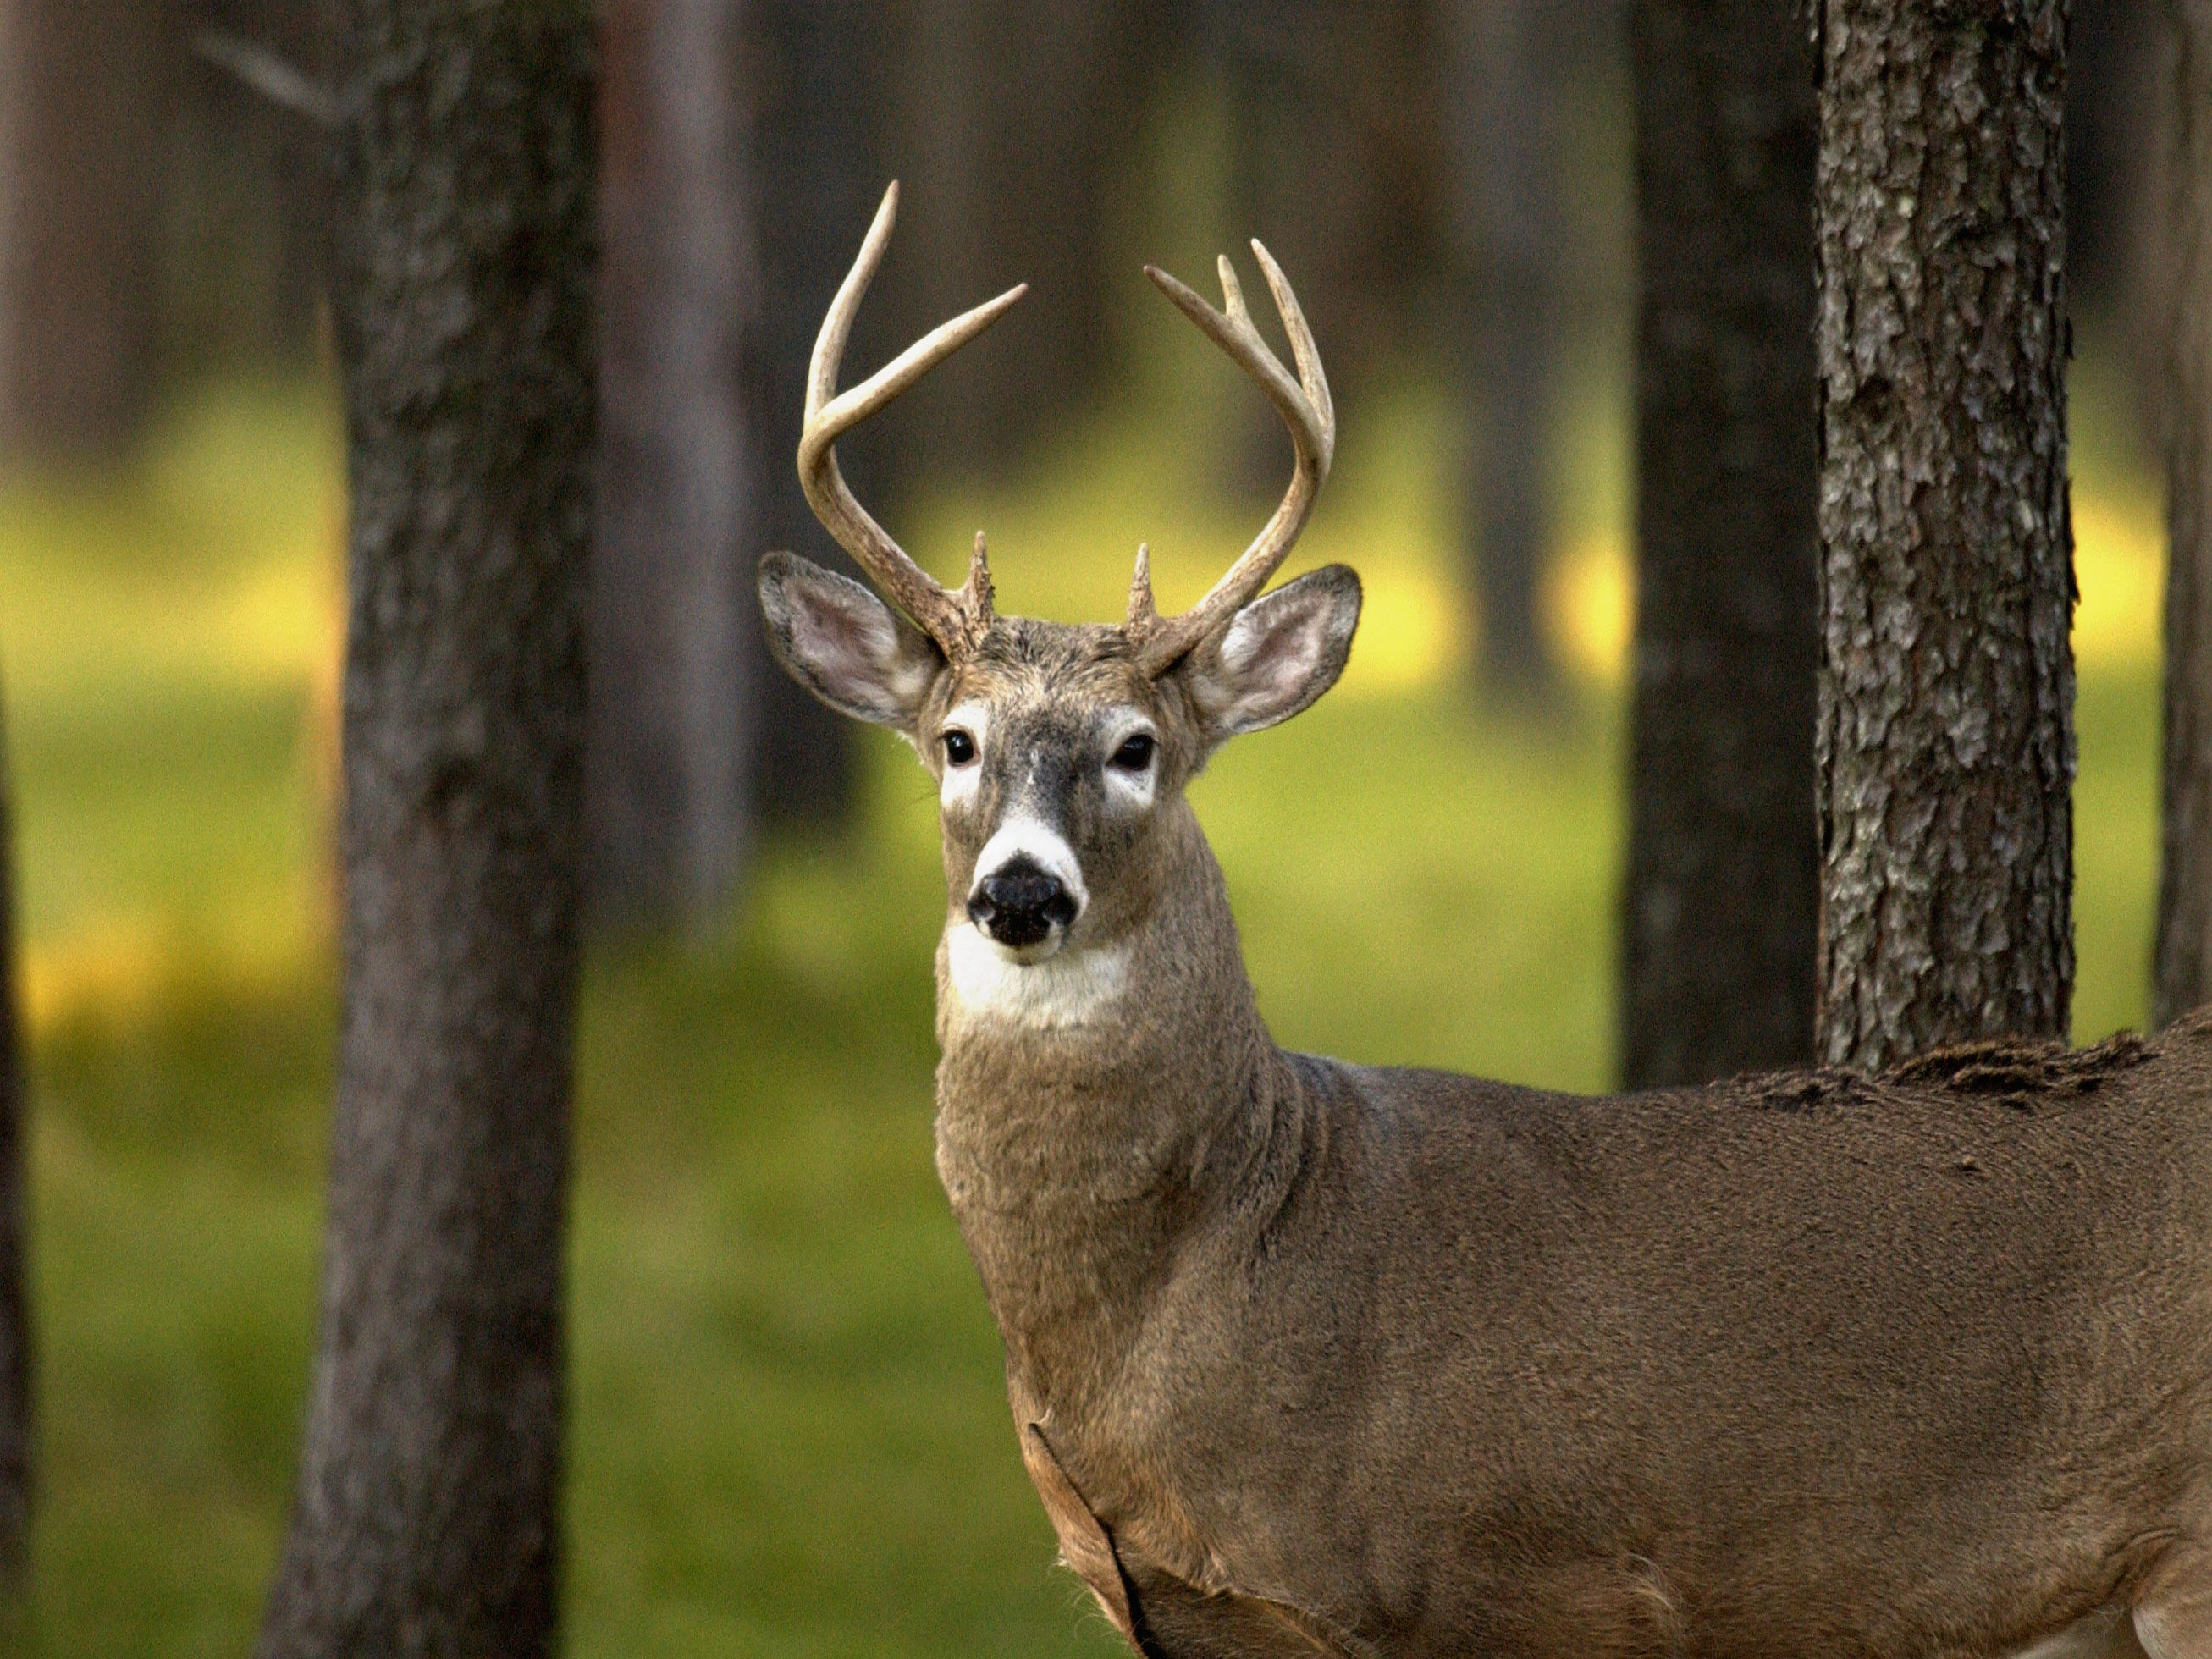 State steps up chronic wasting disease surveillance